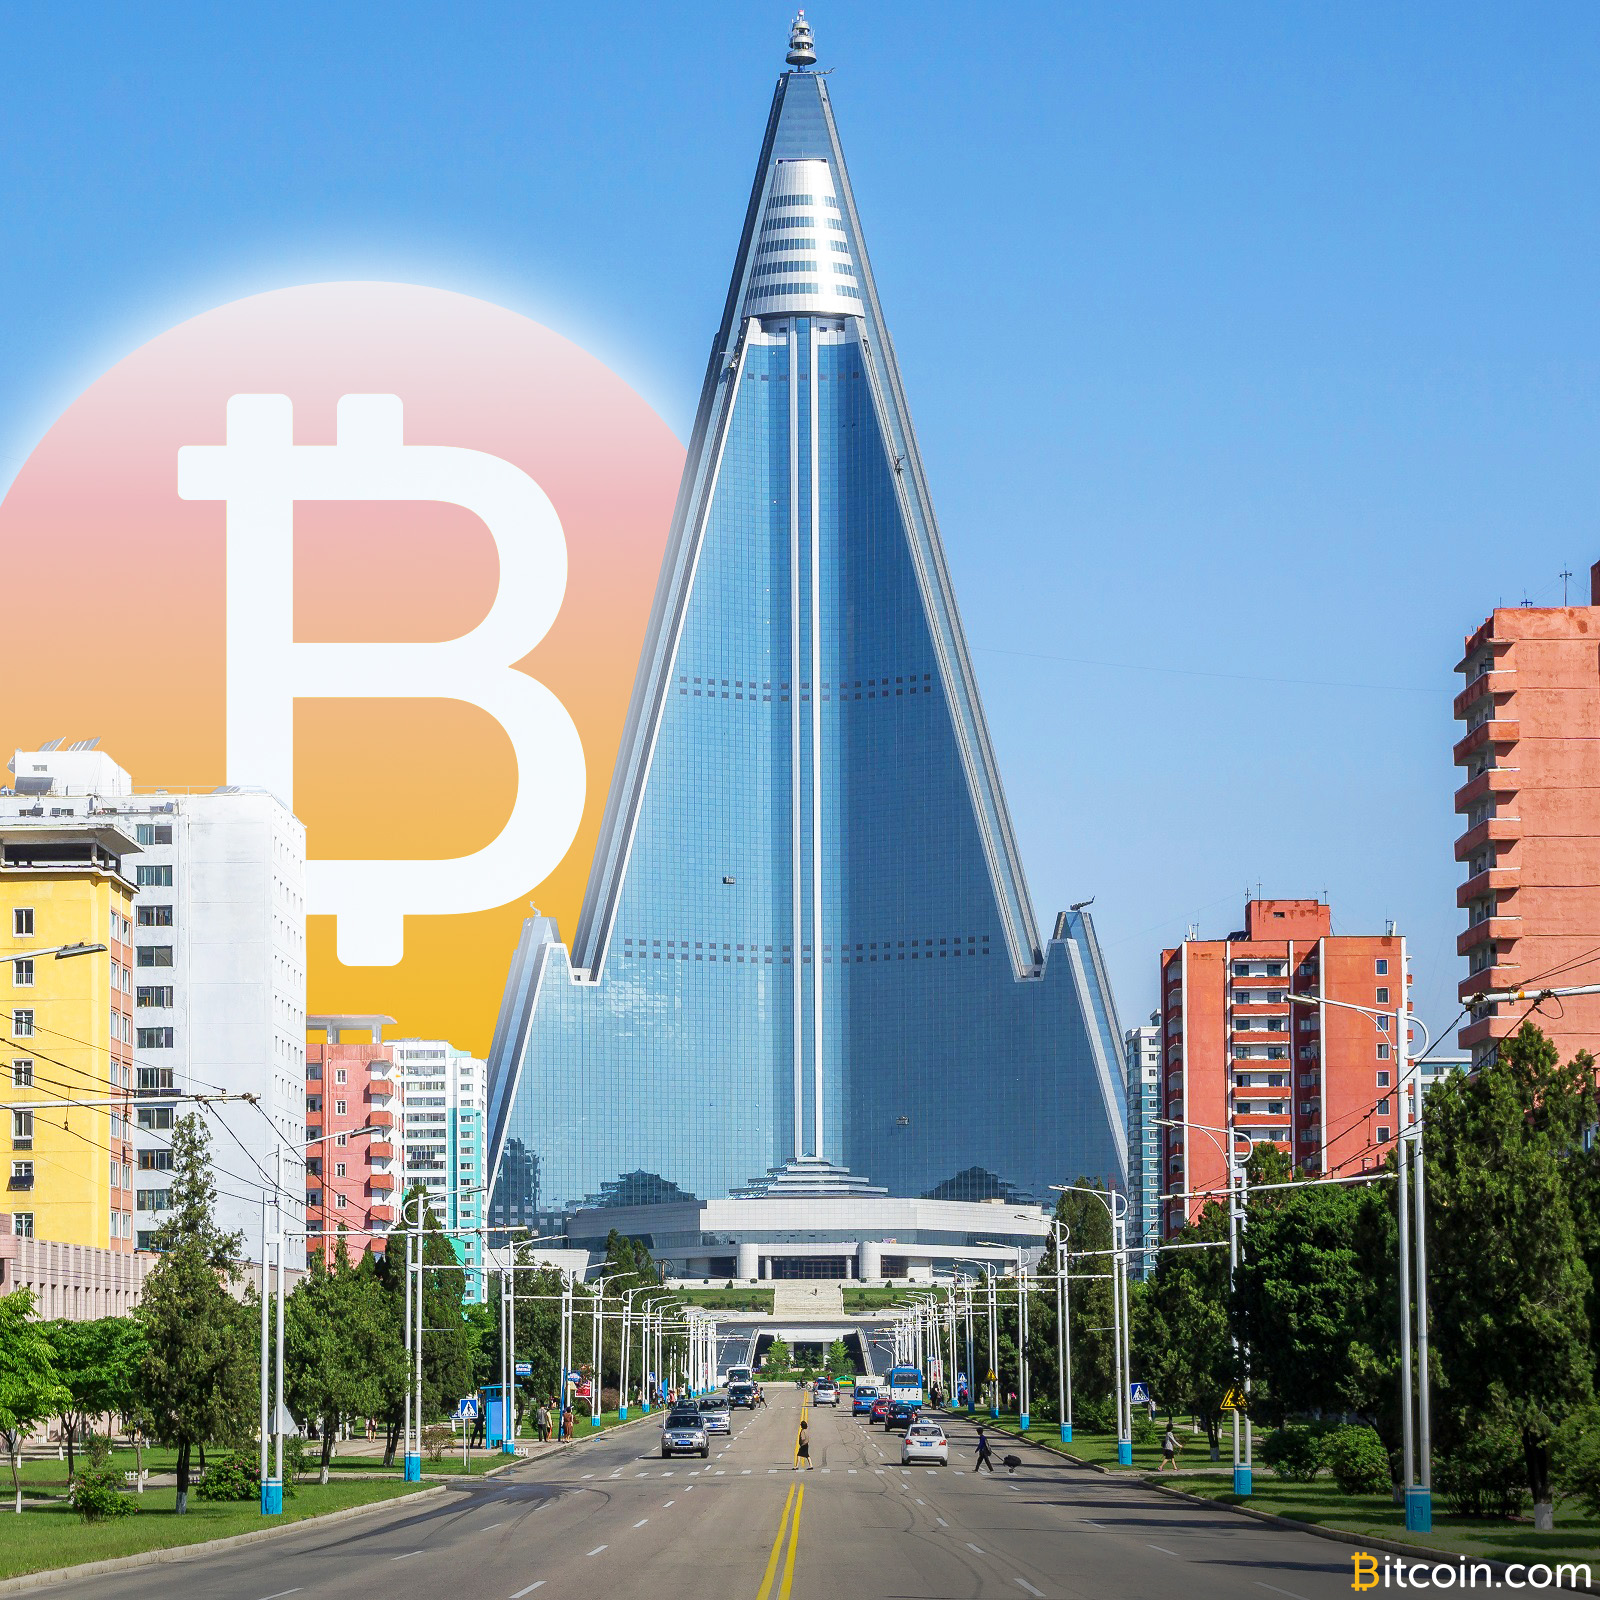 UN Sanctions Expert Warns People To Stay Away From North Korean Crypto Conferences